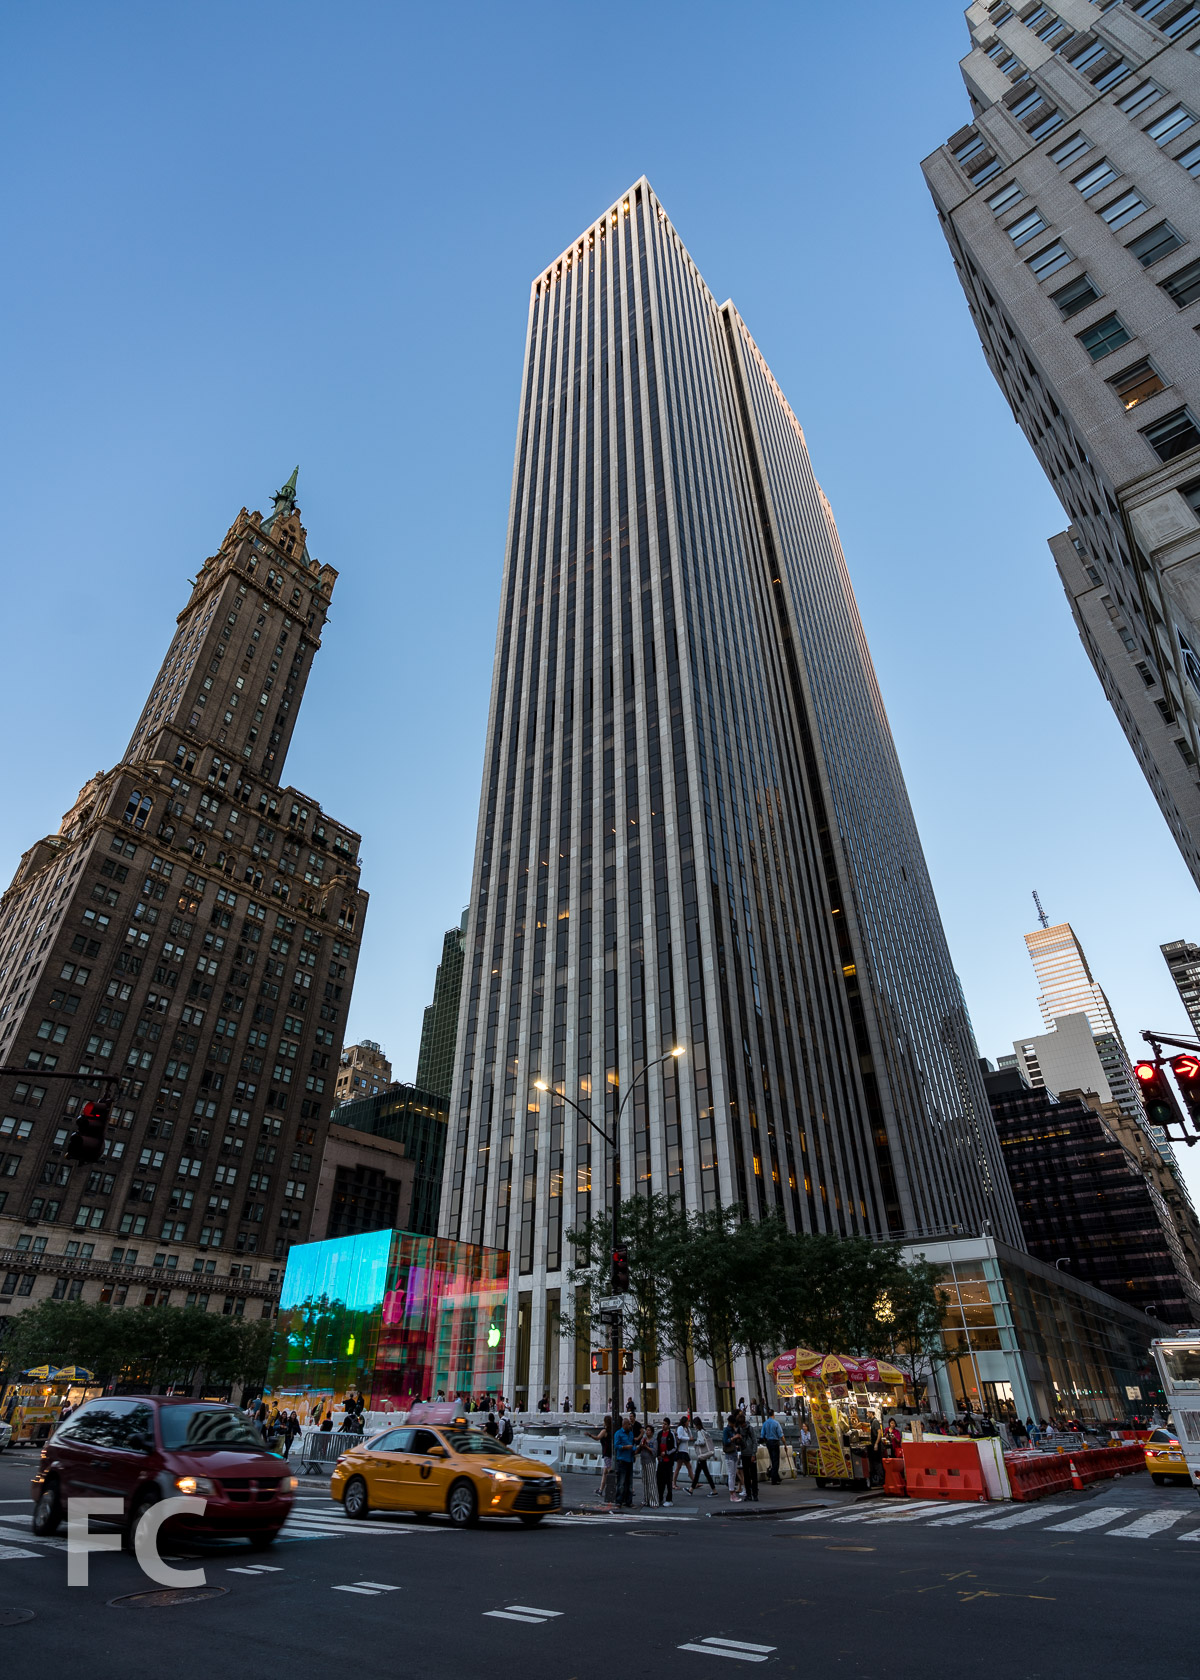 Southwest corner from 5th Avenue.